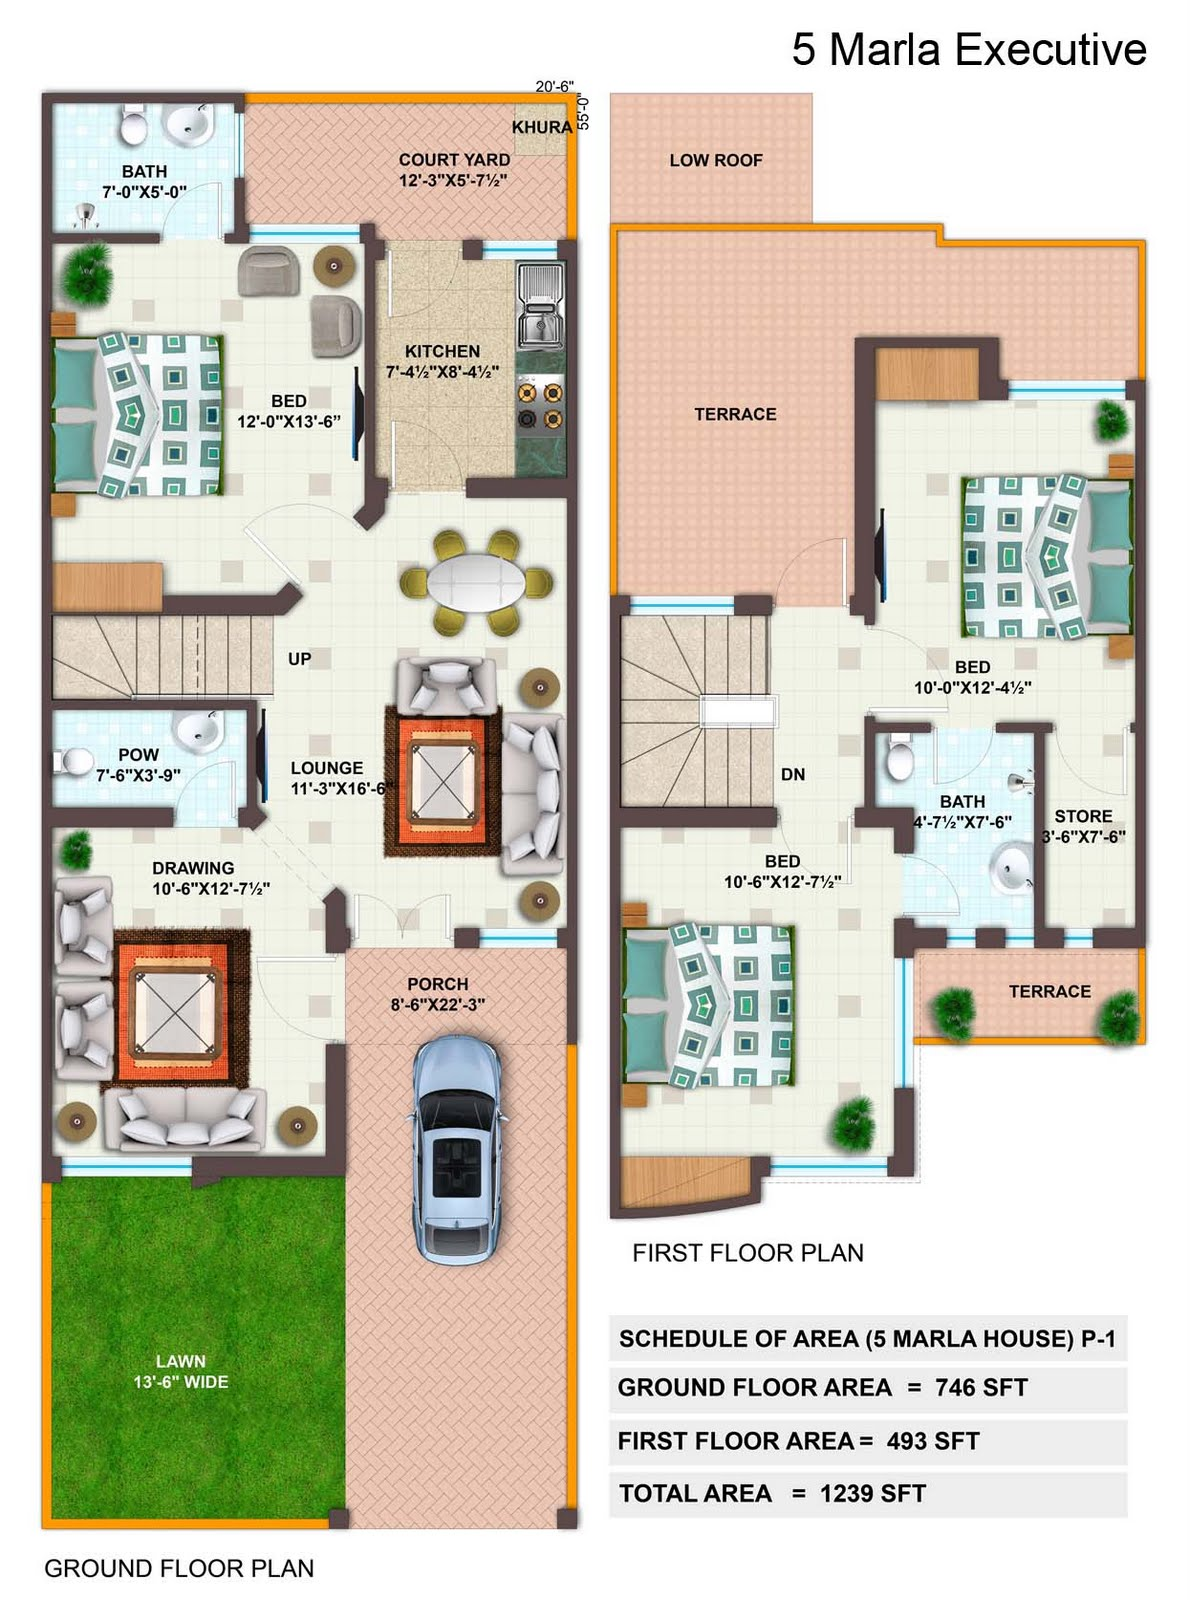 Pin House Maps 7 Marla Design Picture on Pinterest